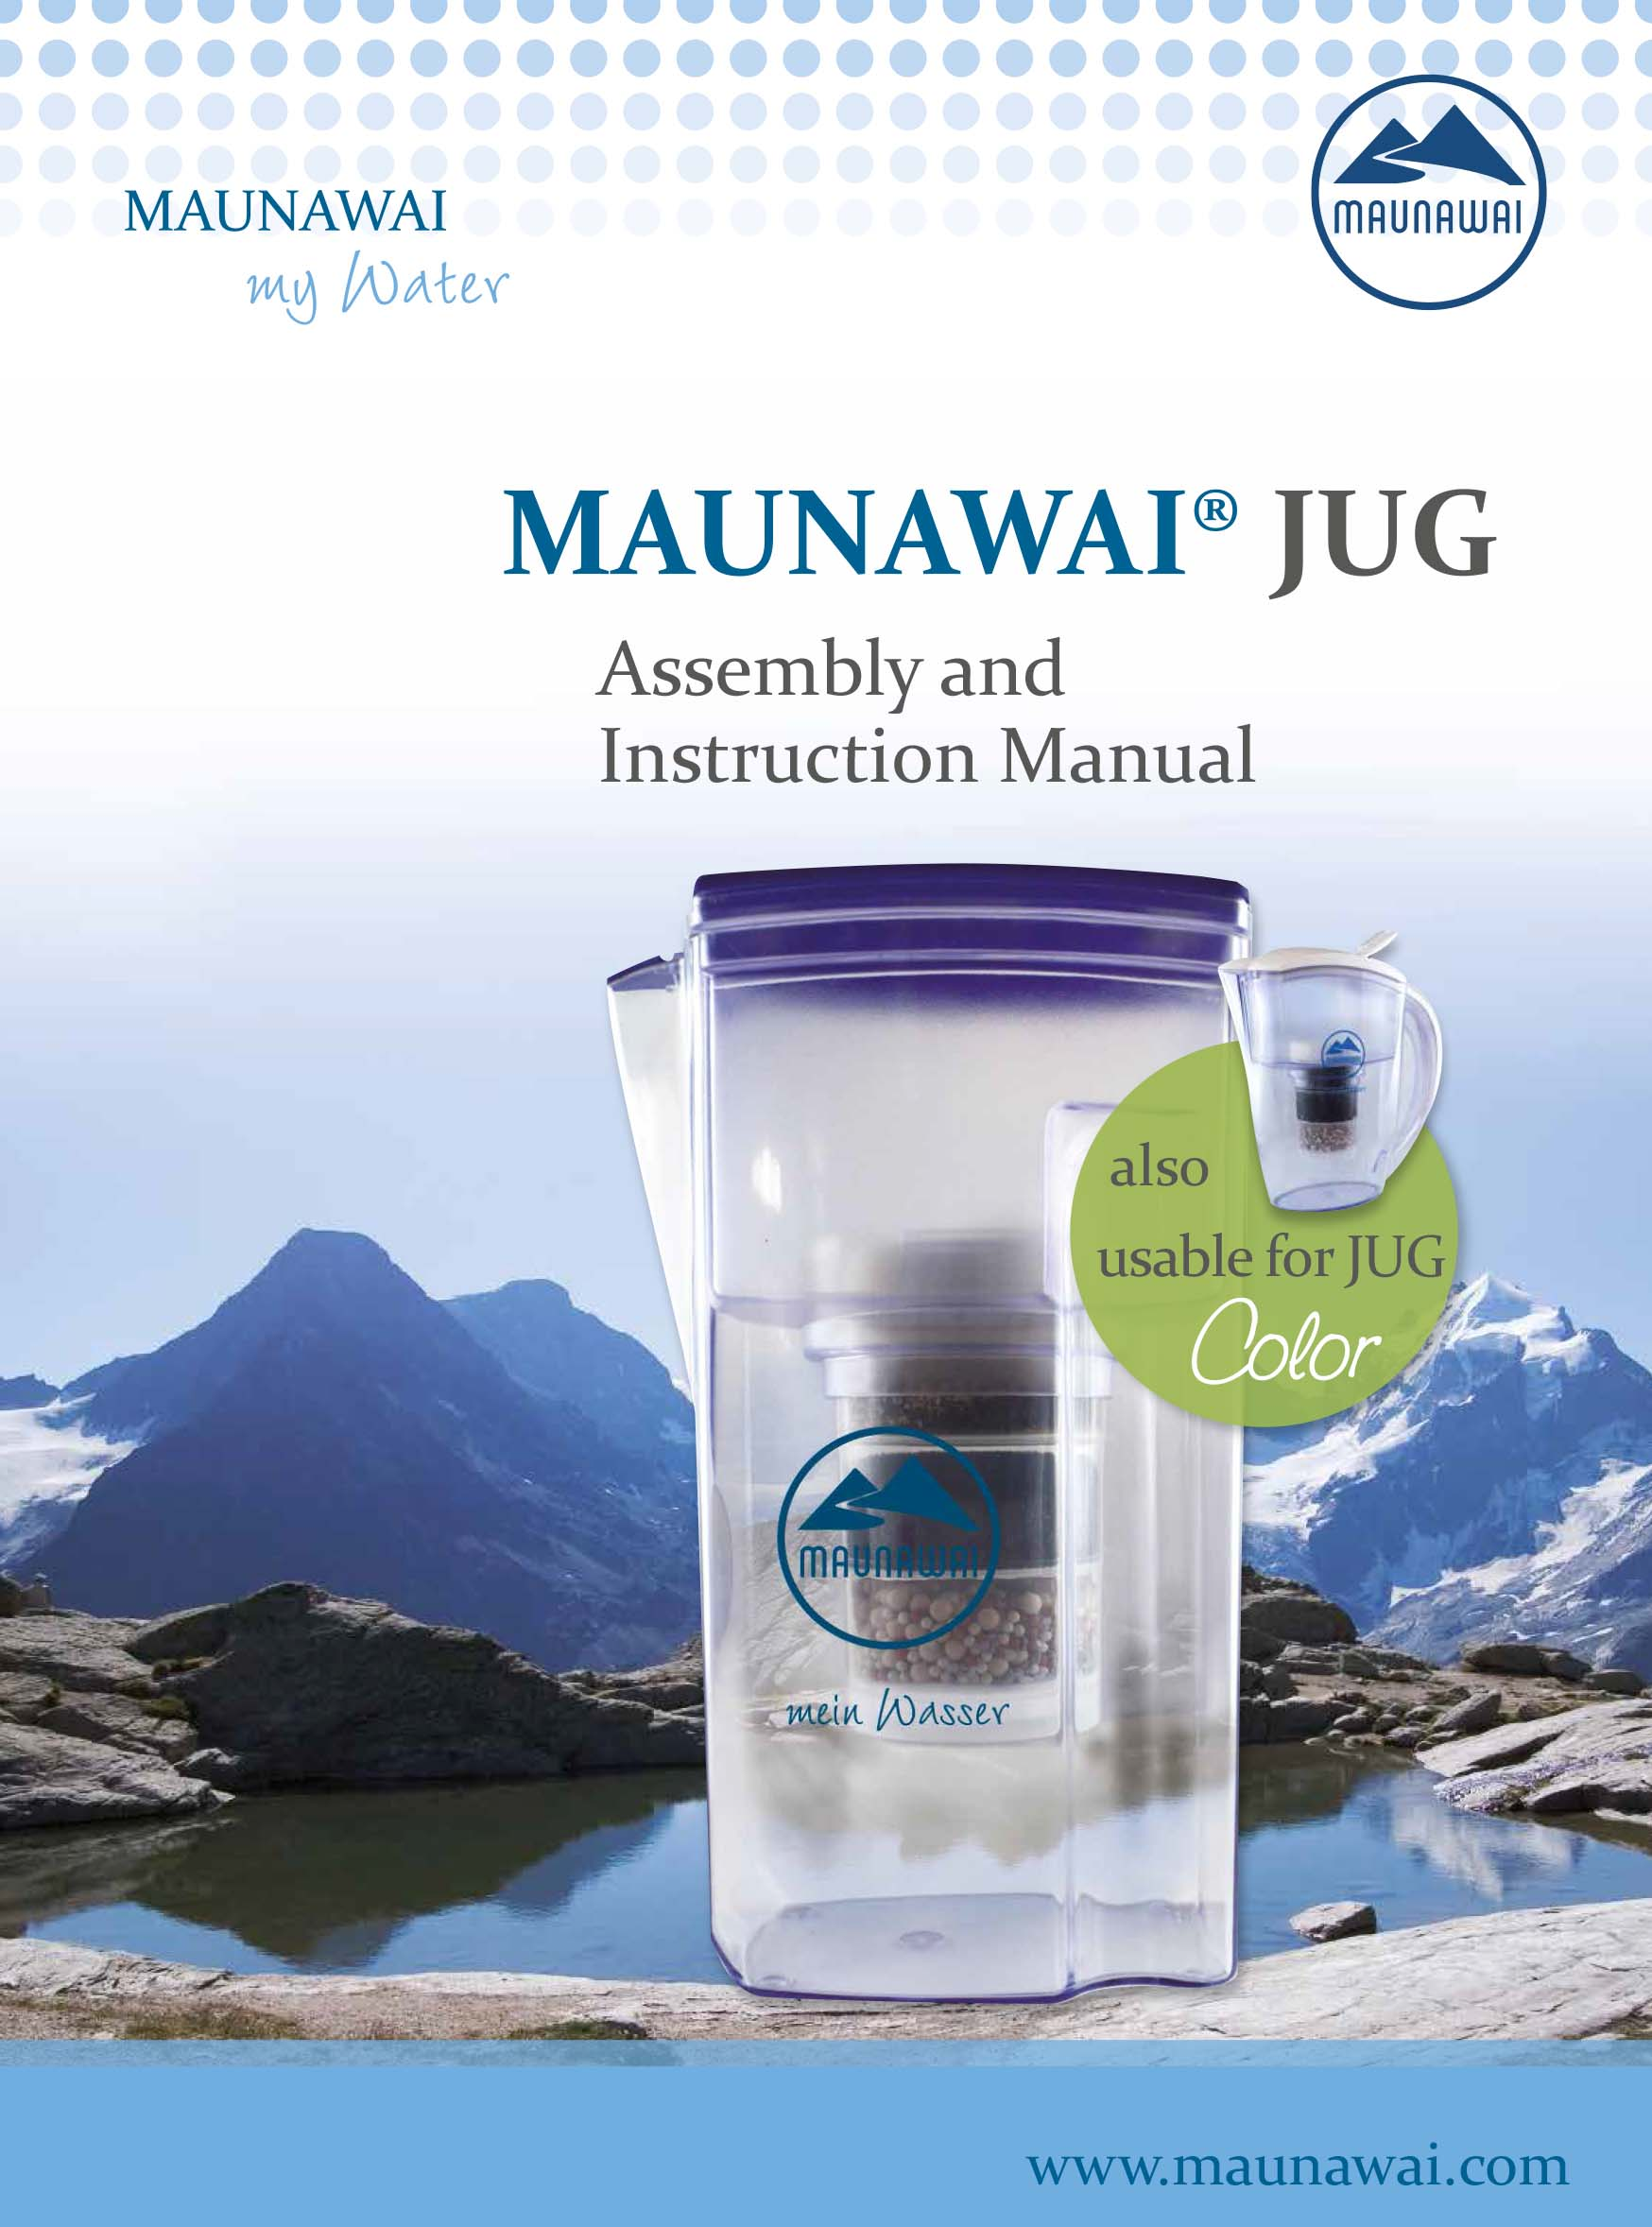 MAUNAWAI-Jug-Assembly-and-Instruction-Manual-1.jpg